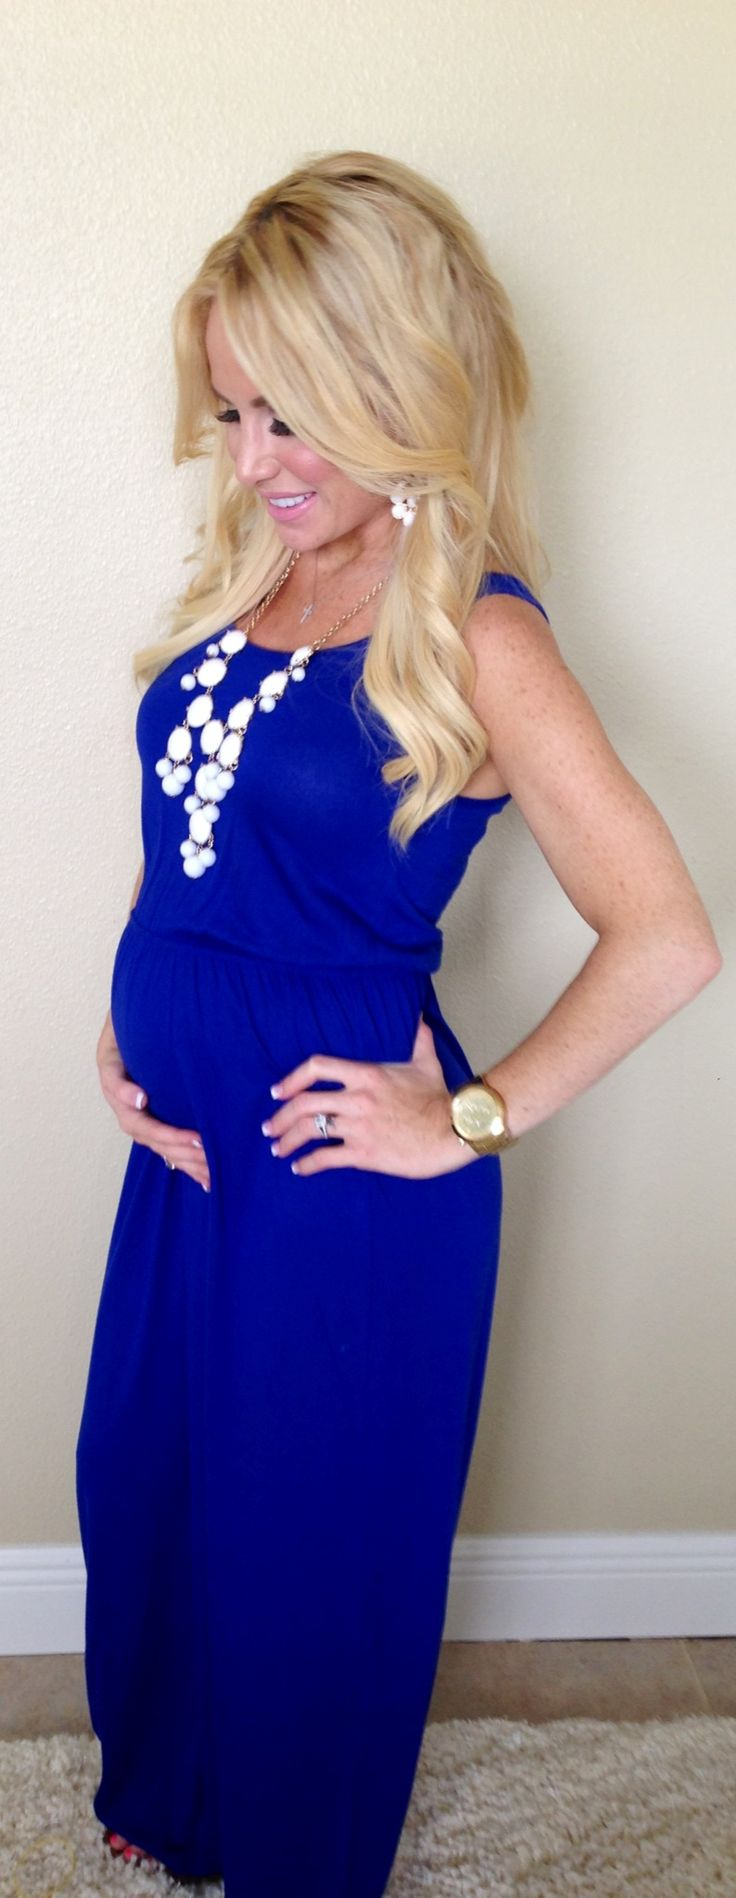 23 Weeks Style Pregnancy Pregnant Fashion Outfits